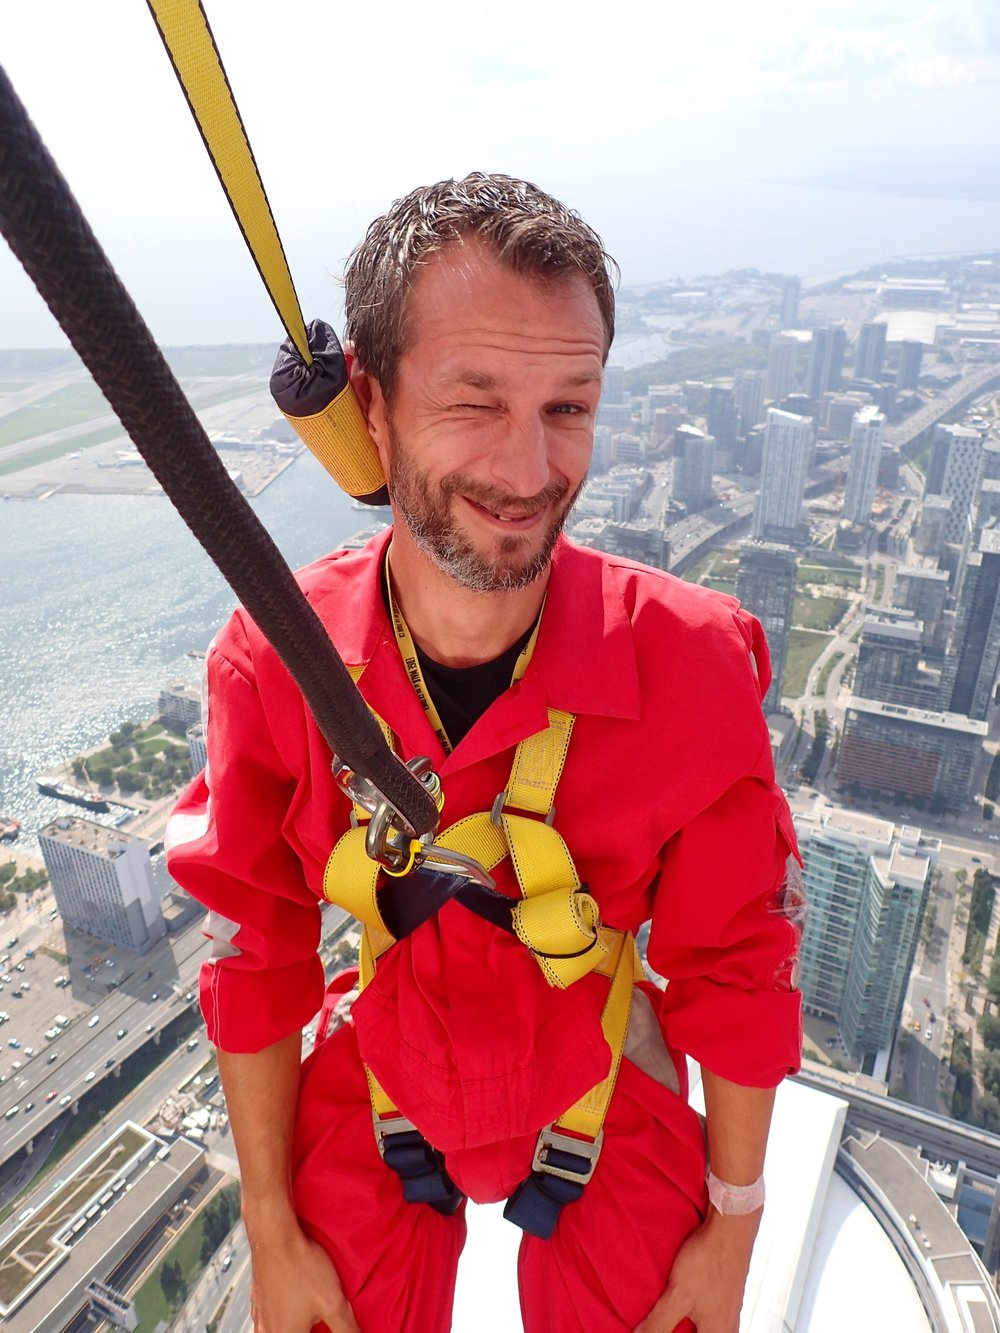 I'm hanging at 356m over Toronto :)